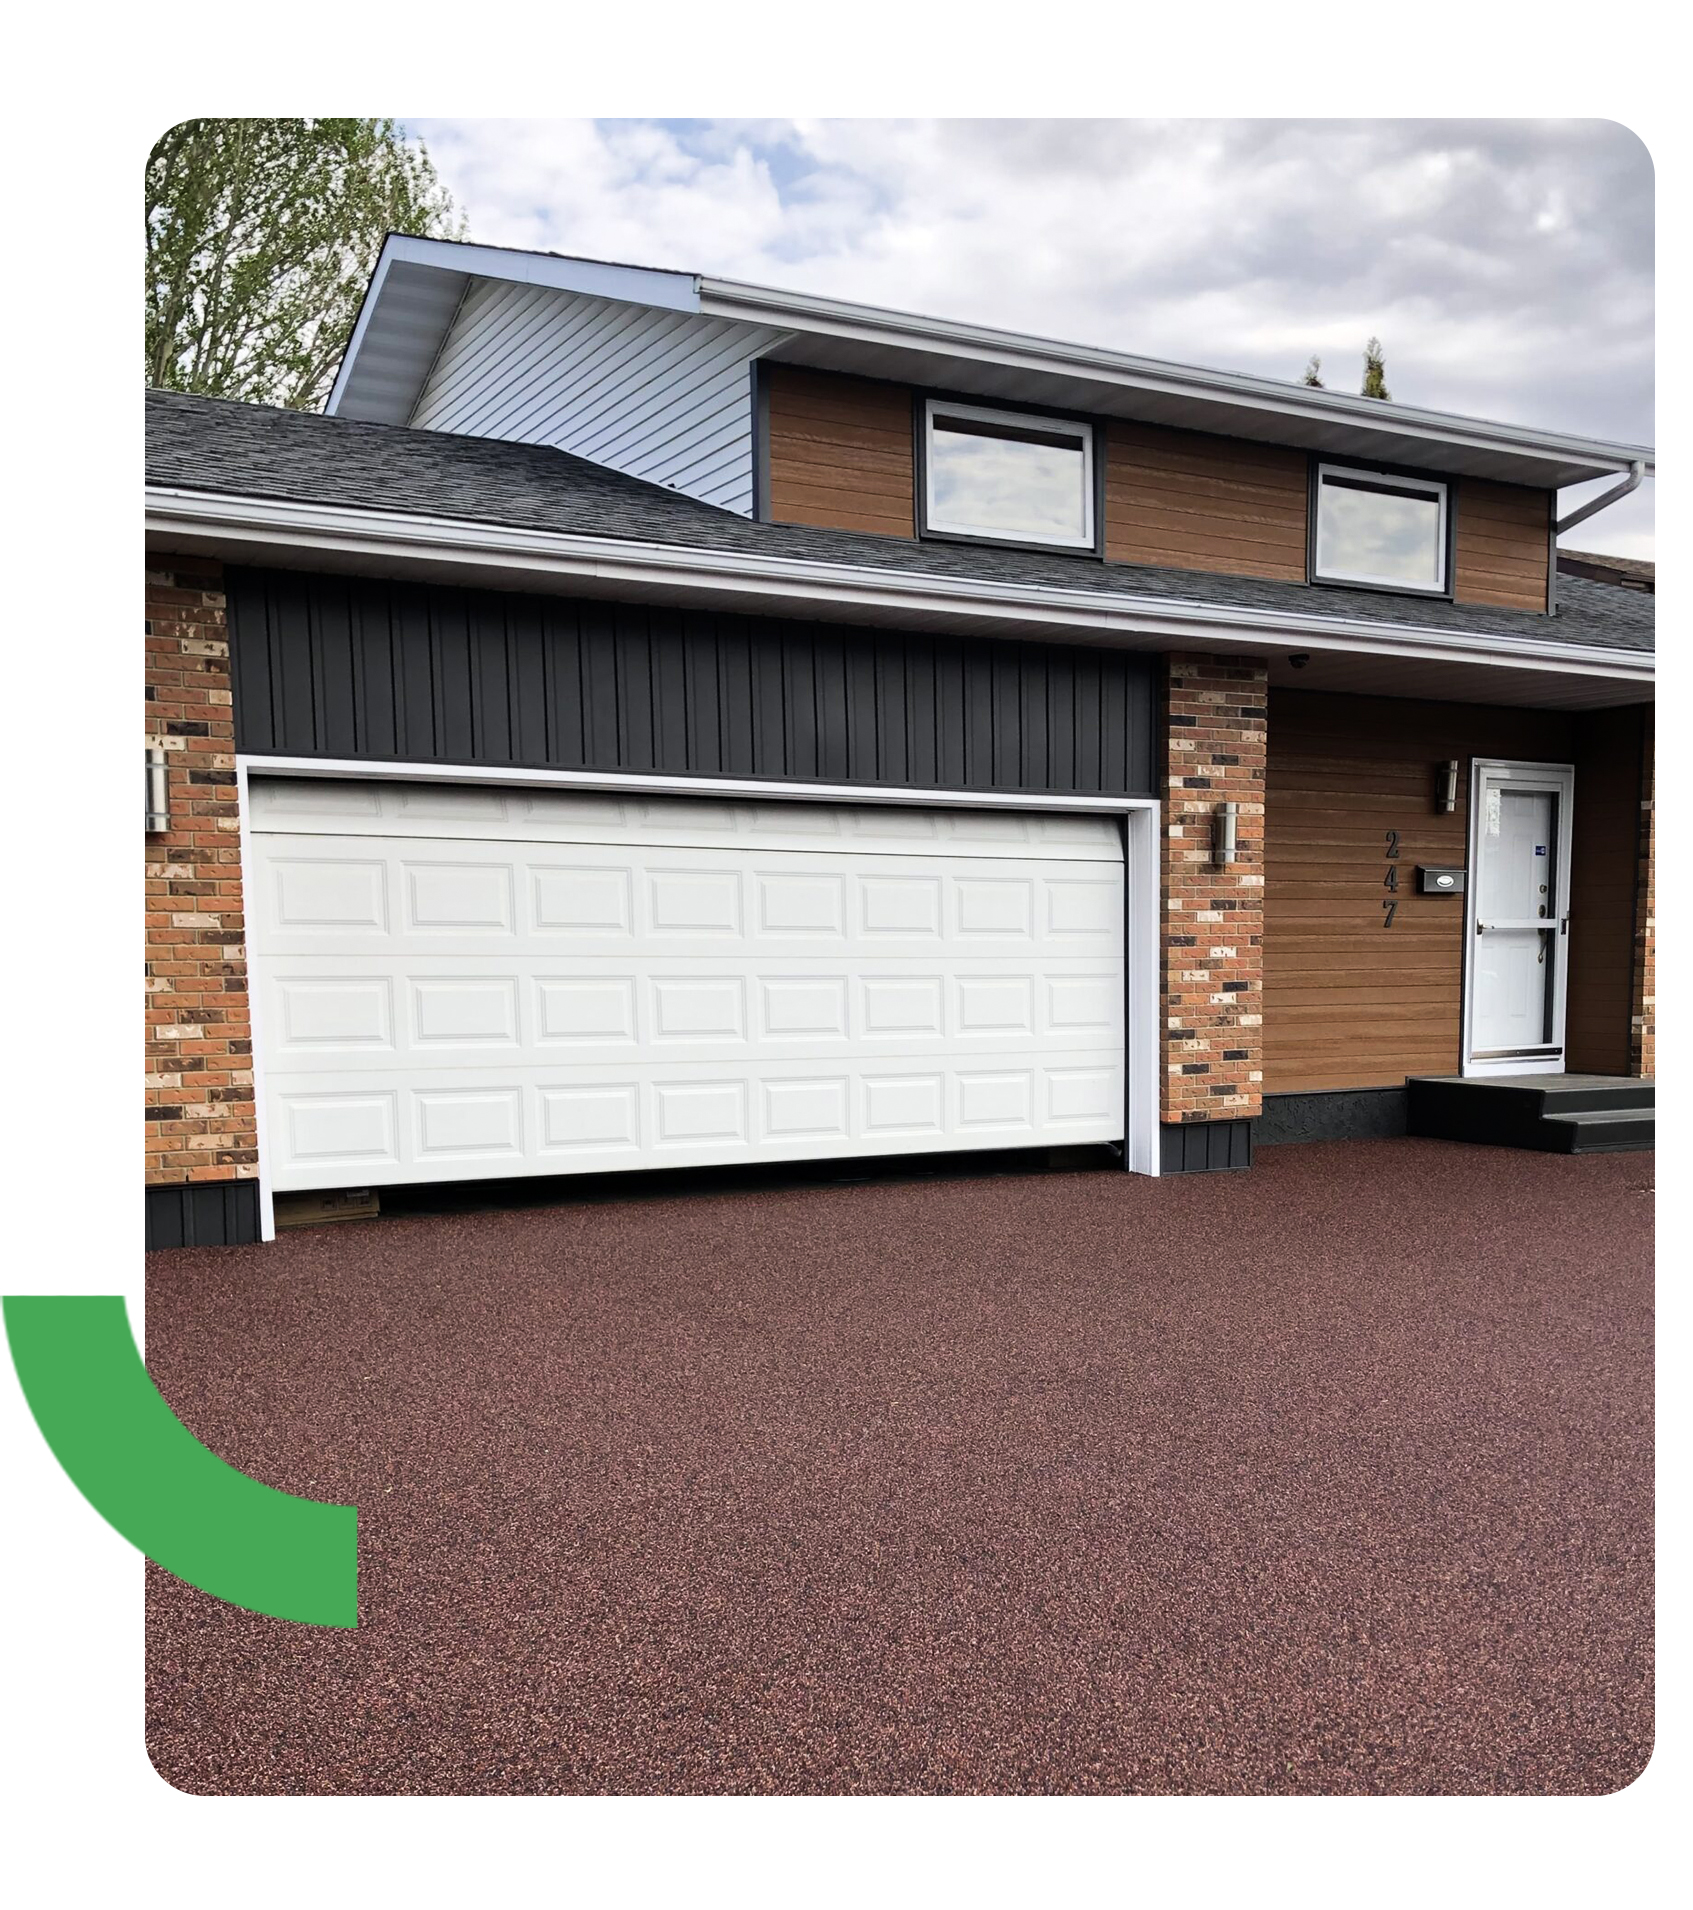 driveway with rubber paving